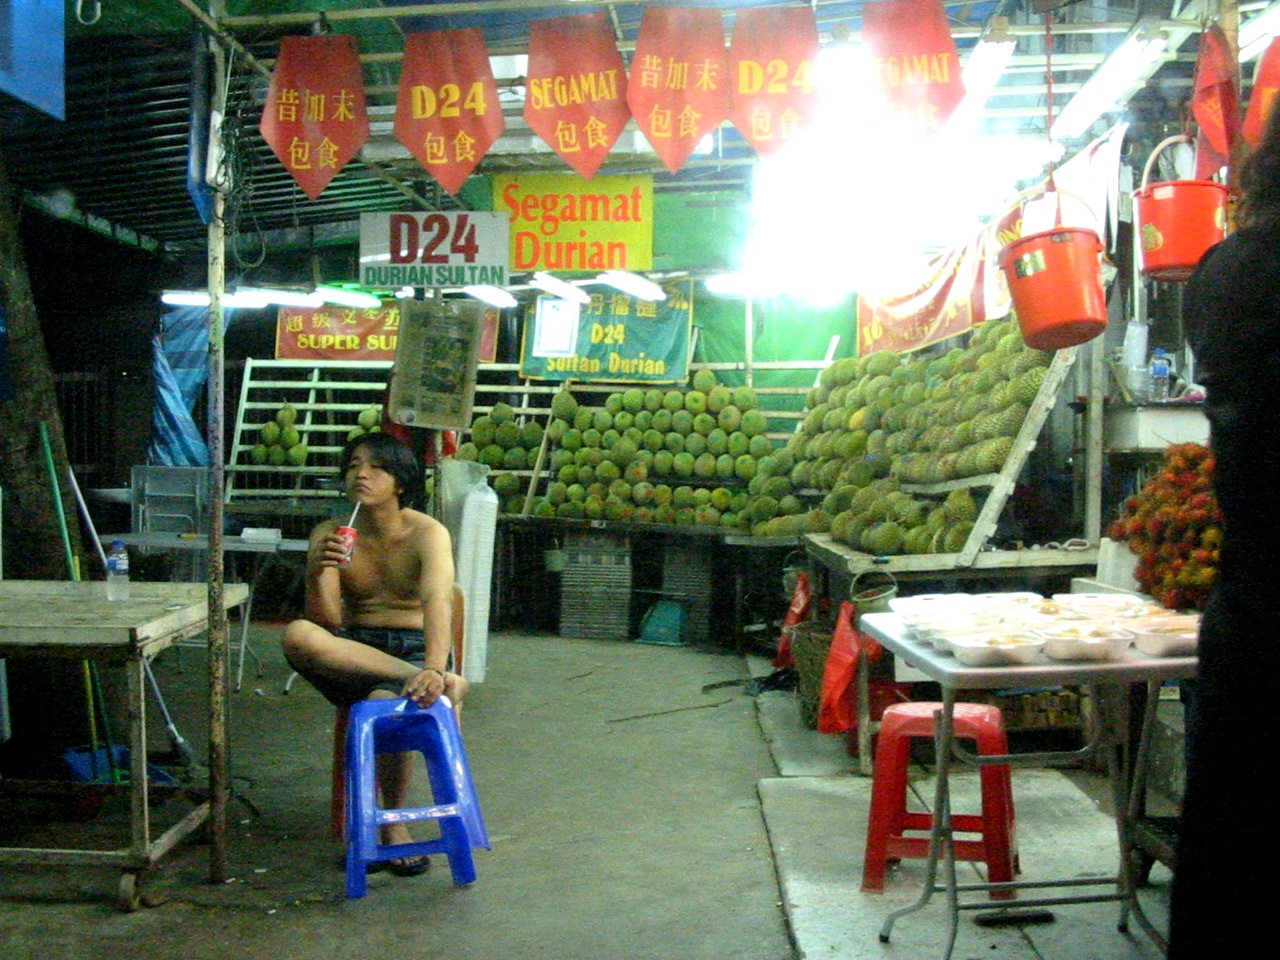 http://upload.wikimedia.org/wikipedia/commons/b/b9/Durian_stall.JPG